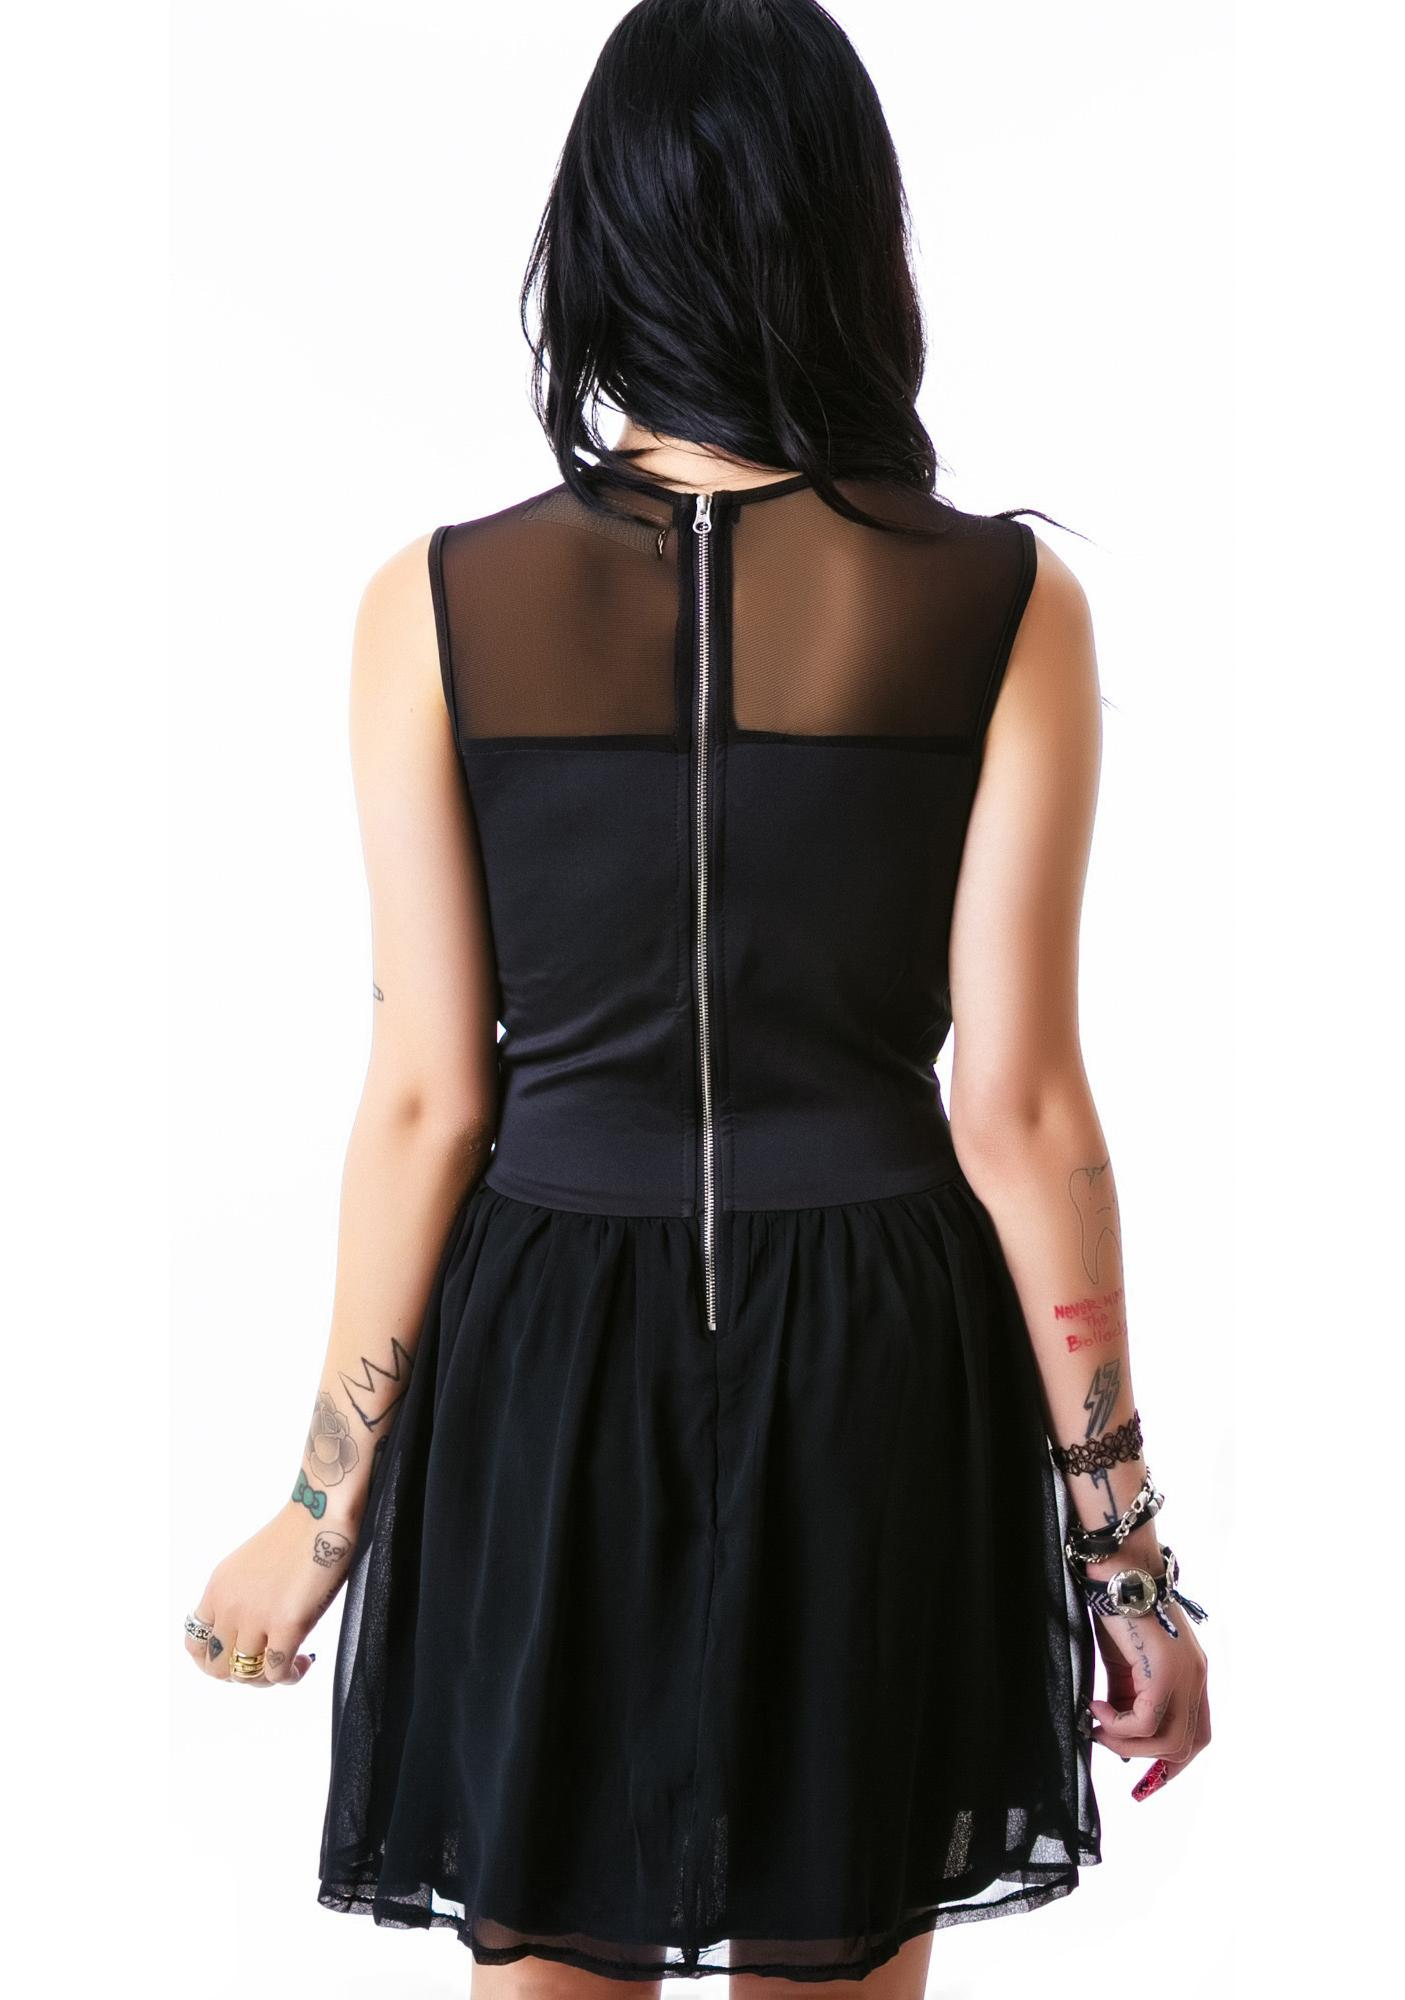 Deja Entendu Studded Bodice Dress